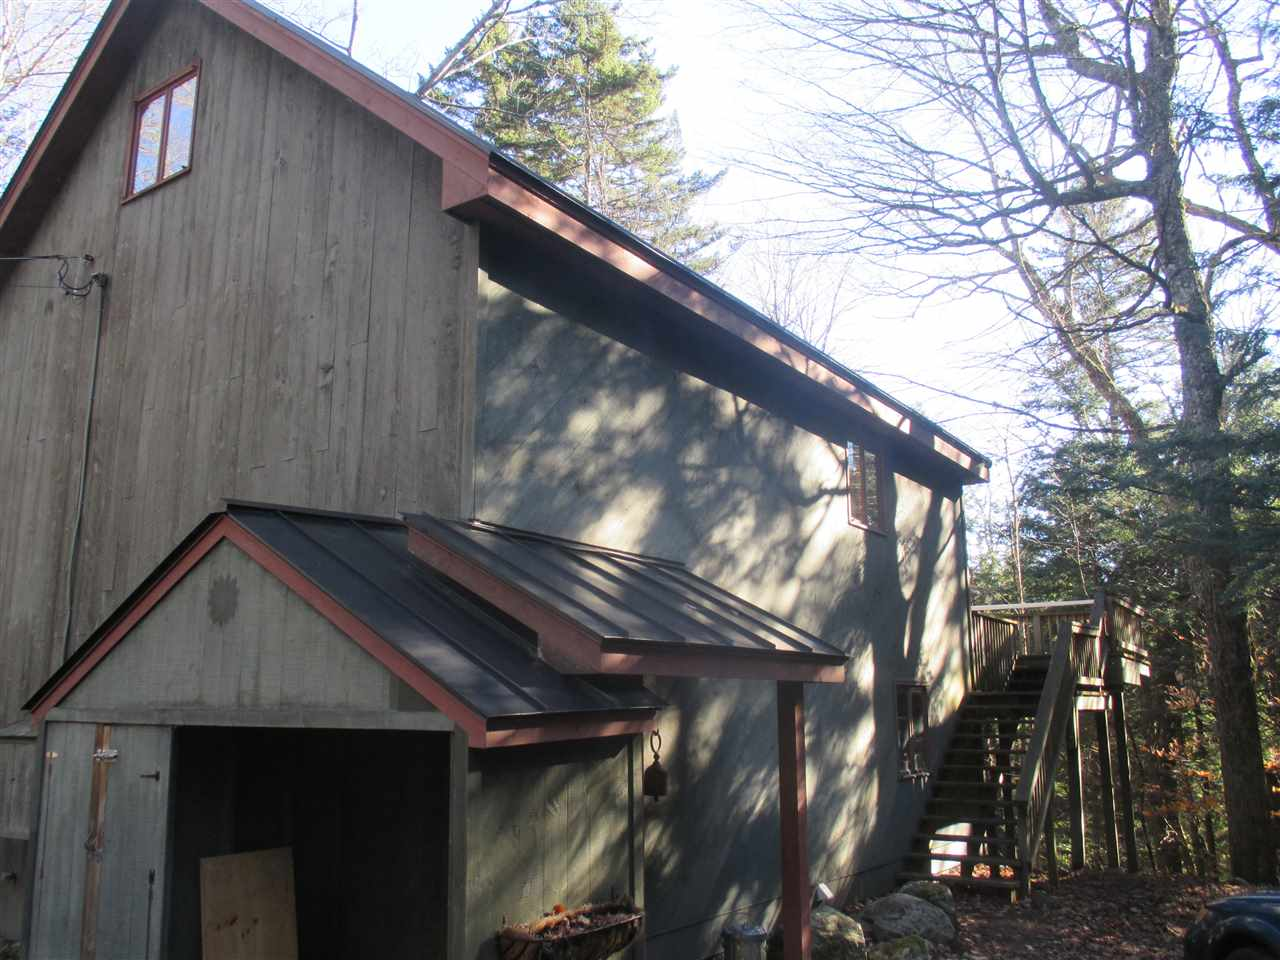 613  Forest Mountain Rd. Peru, VT 05162